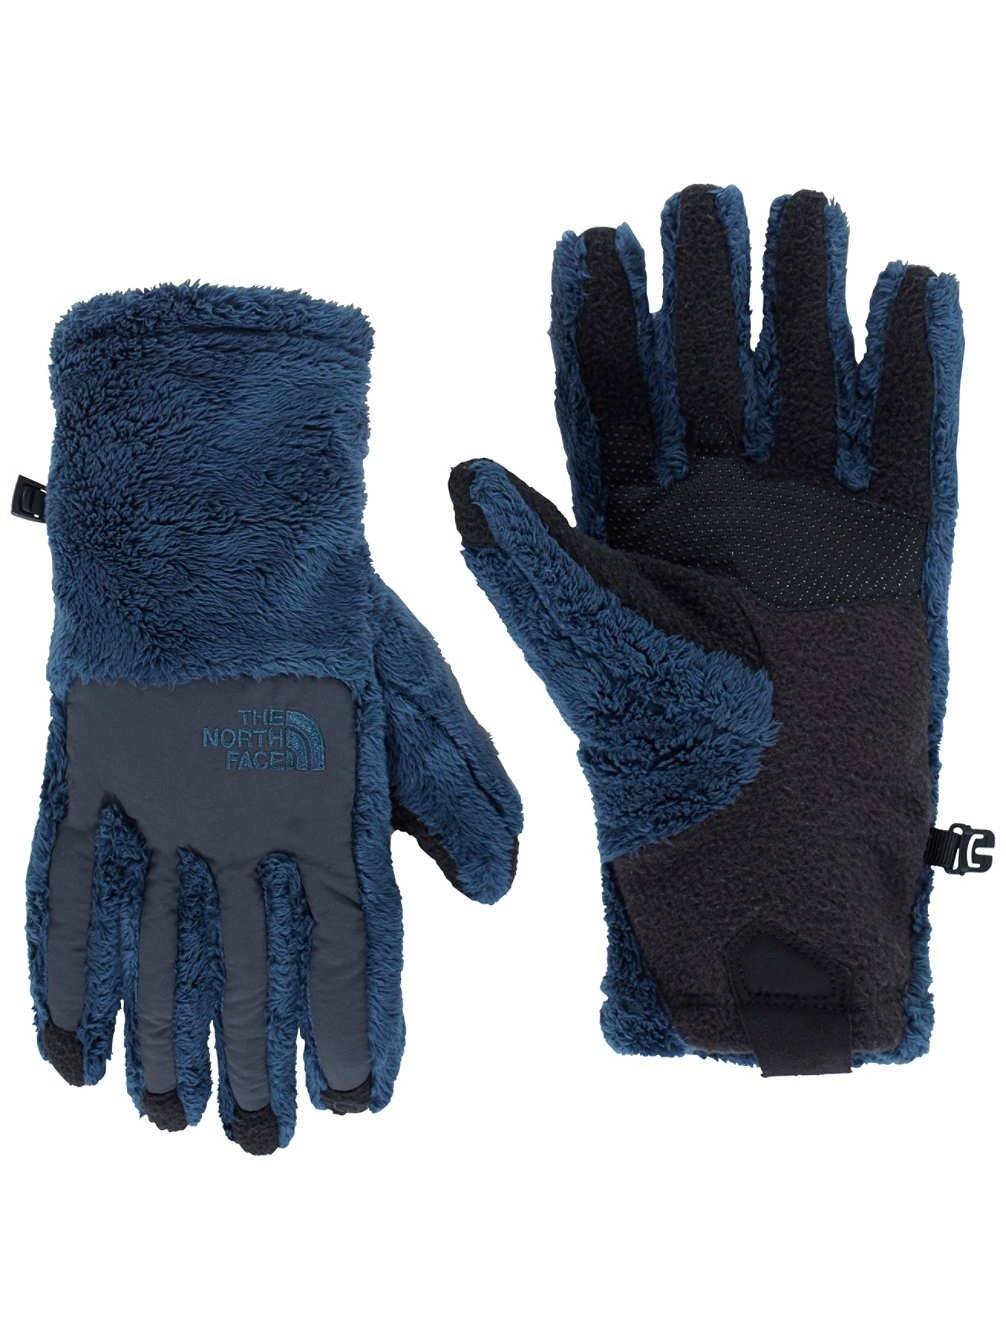 The North Face Ladies Denali Thermal Etip Glove Ink Blue L